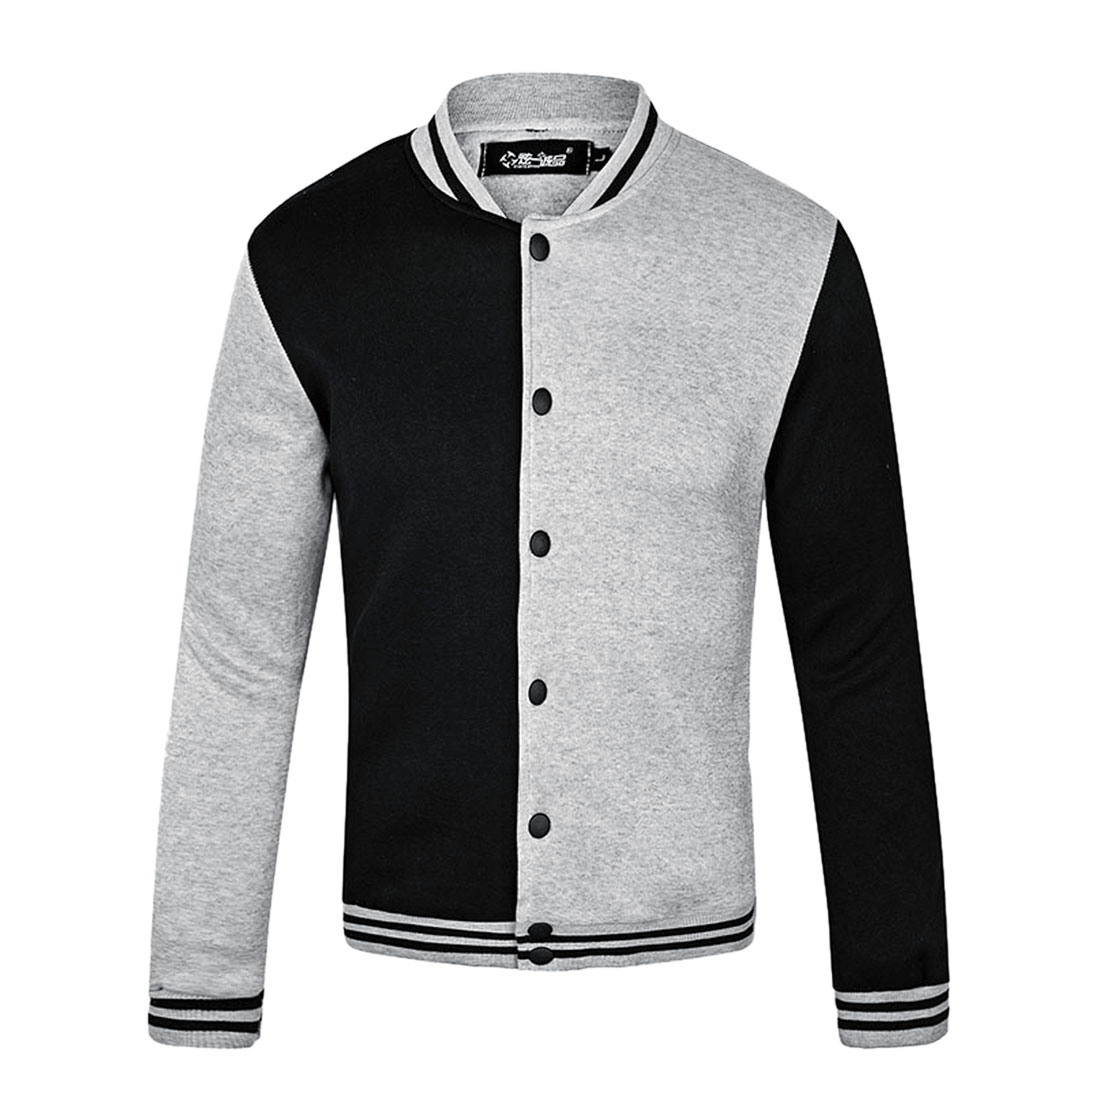 Unique Bargains Men's Stand Collar Snap Fasten Up Casual Baseball Jackets (Size M / 40)